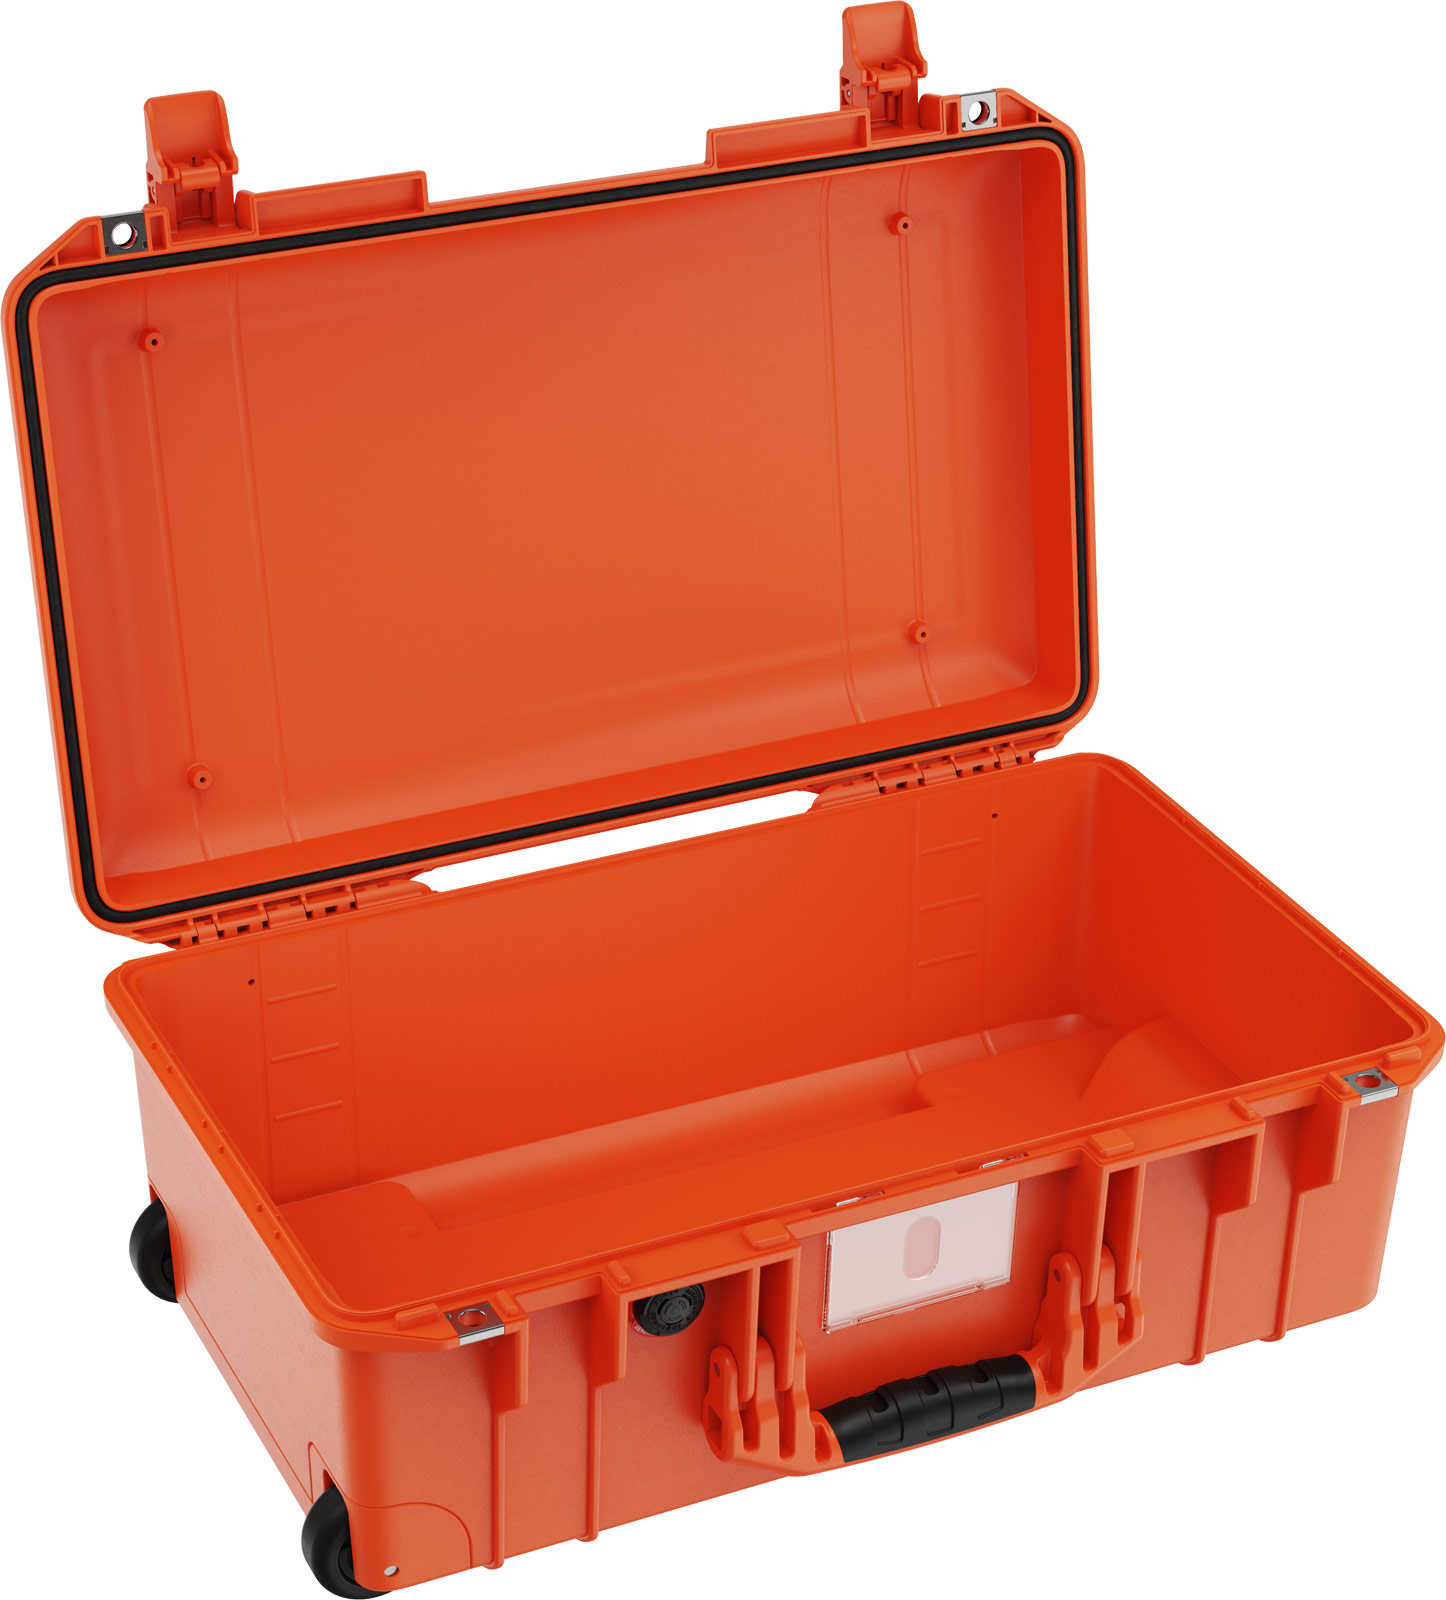 buy pelican air 1535 shop orange portable camera case